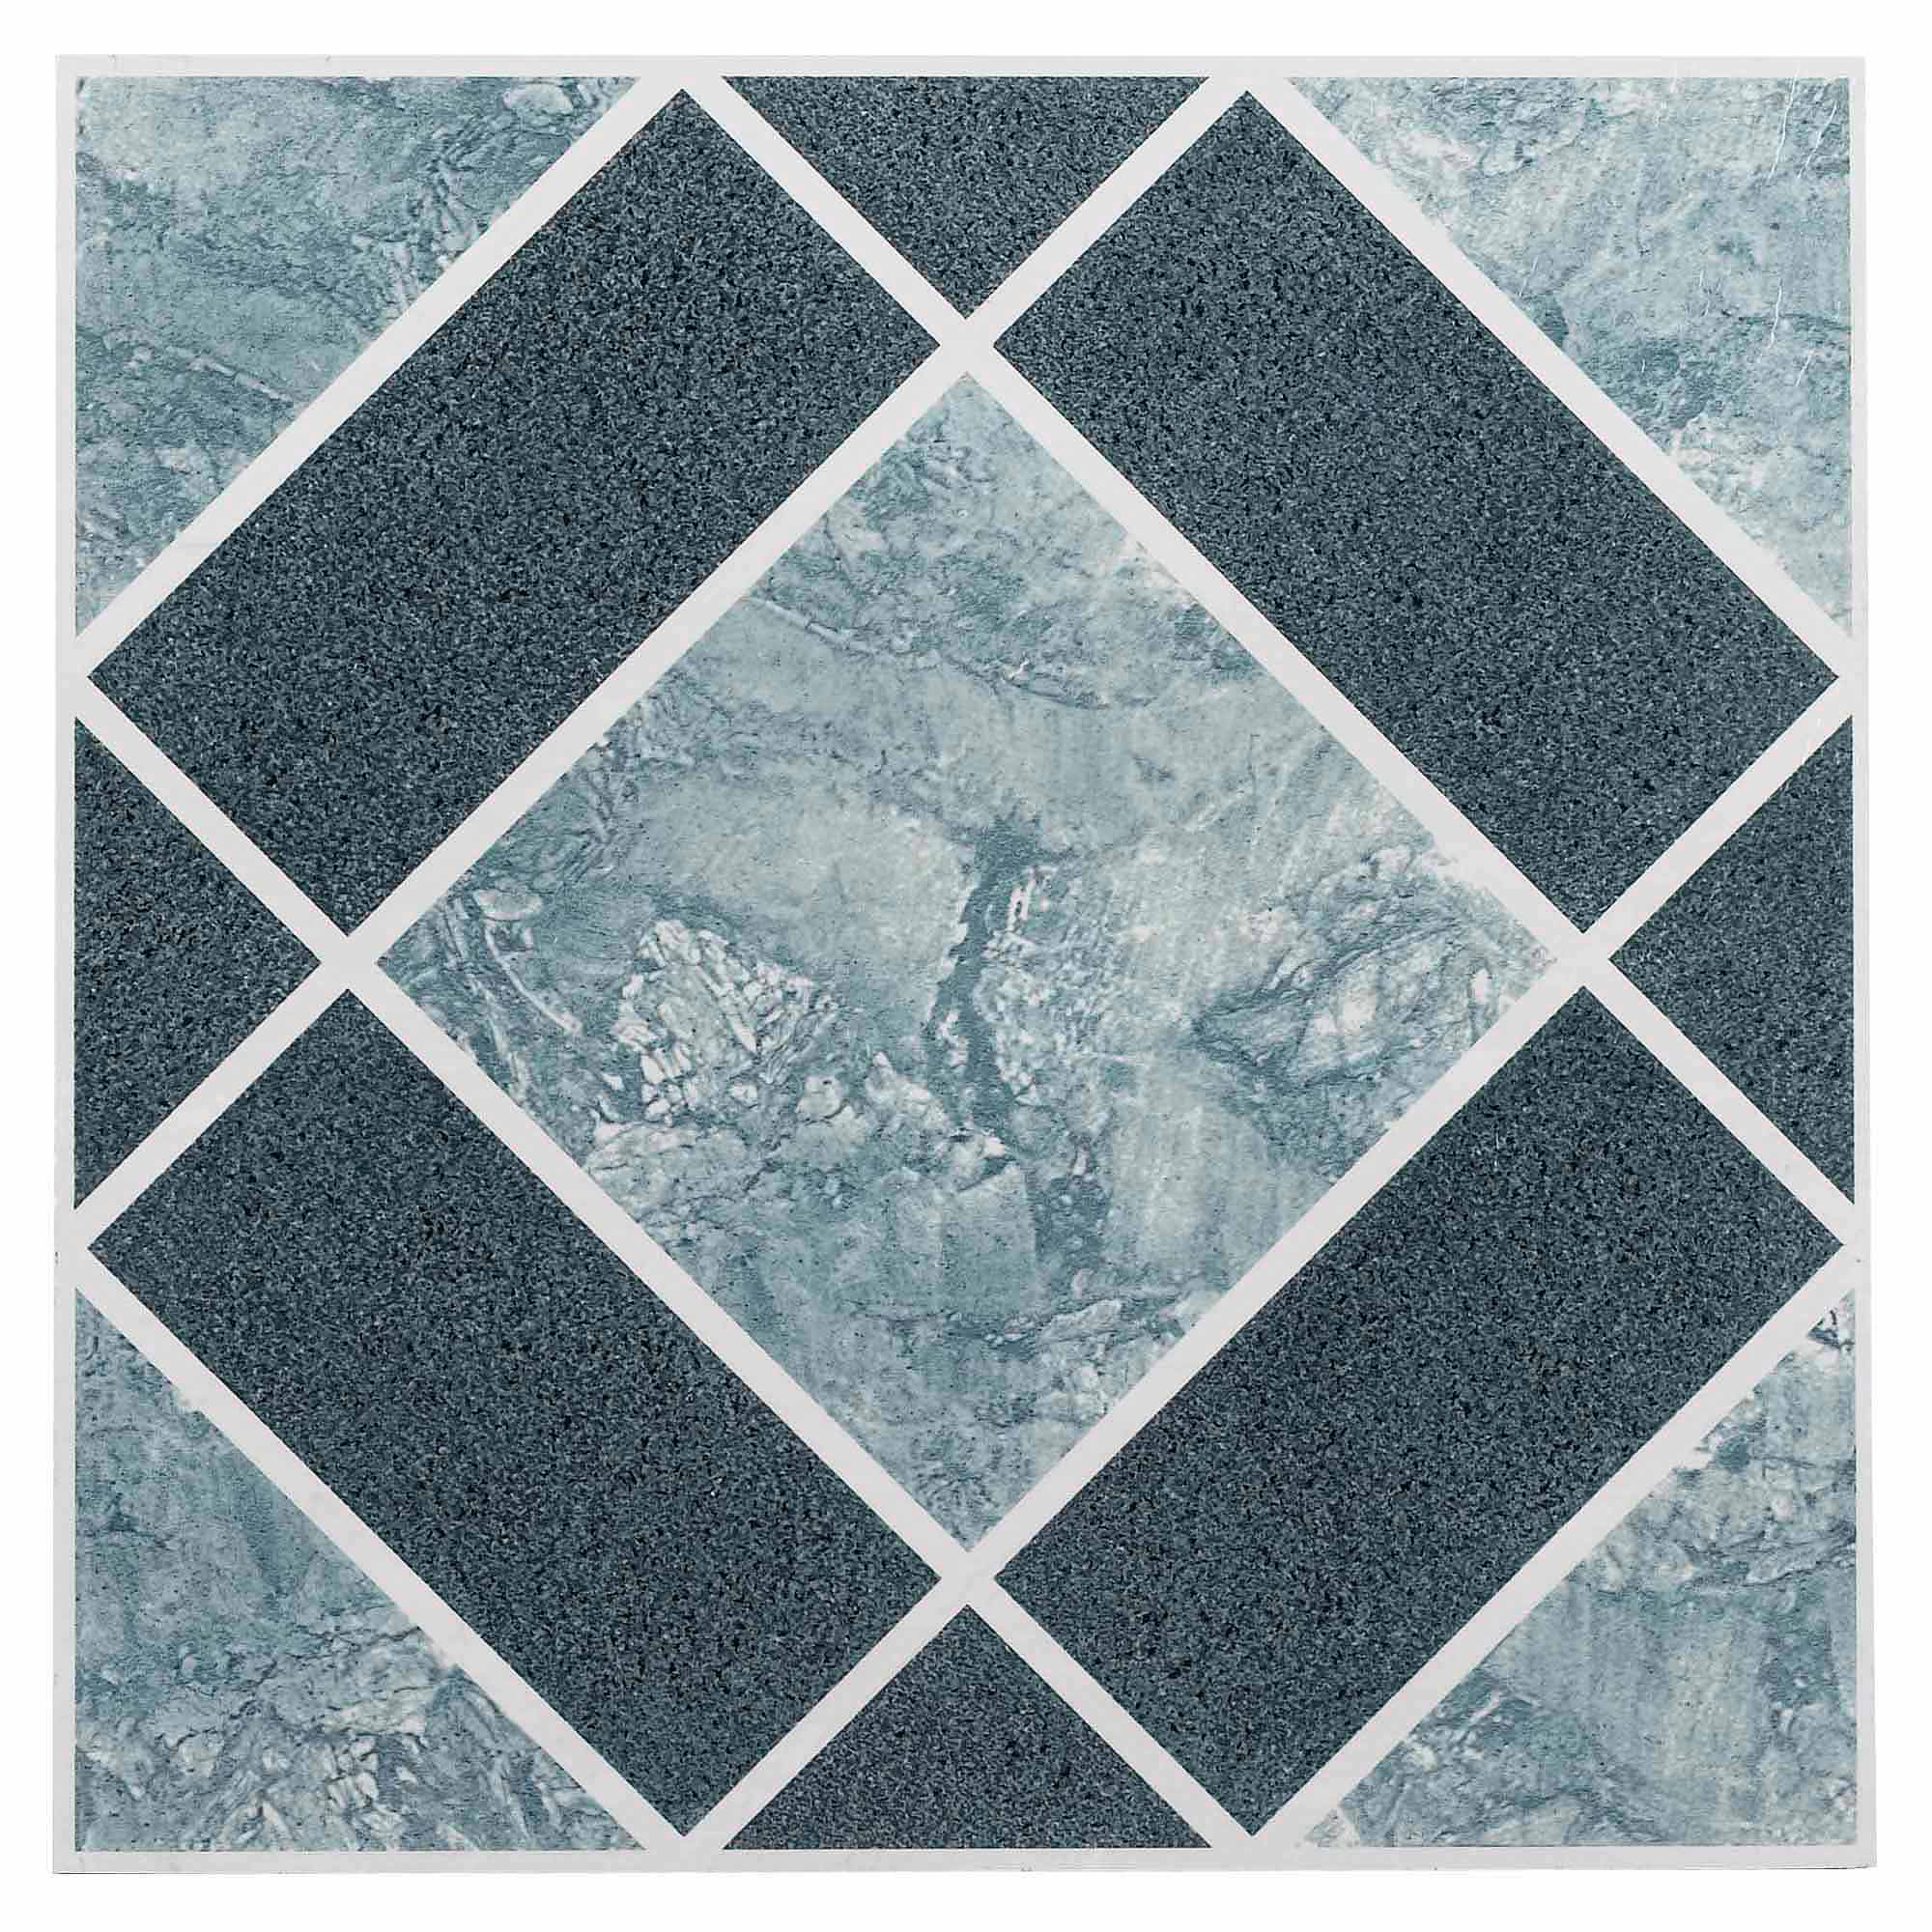 Nexus light dark blue diamond pattern 12x12 self adhesive vinyl nexus light dark blue diamond pattern 12x12 self adhesive vinyl floor tile 20 tiles20 sqft walmart dailygadgetfo Images